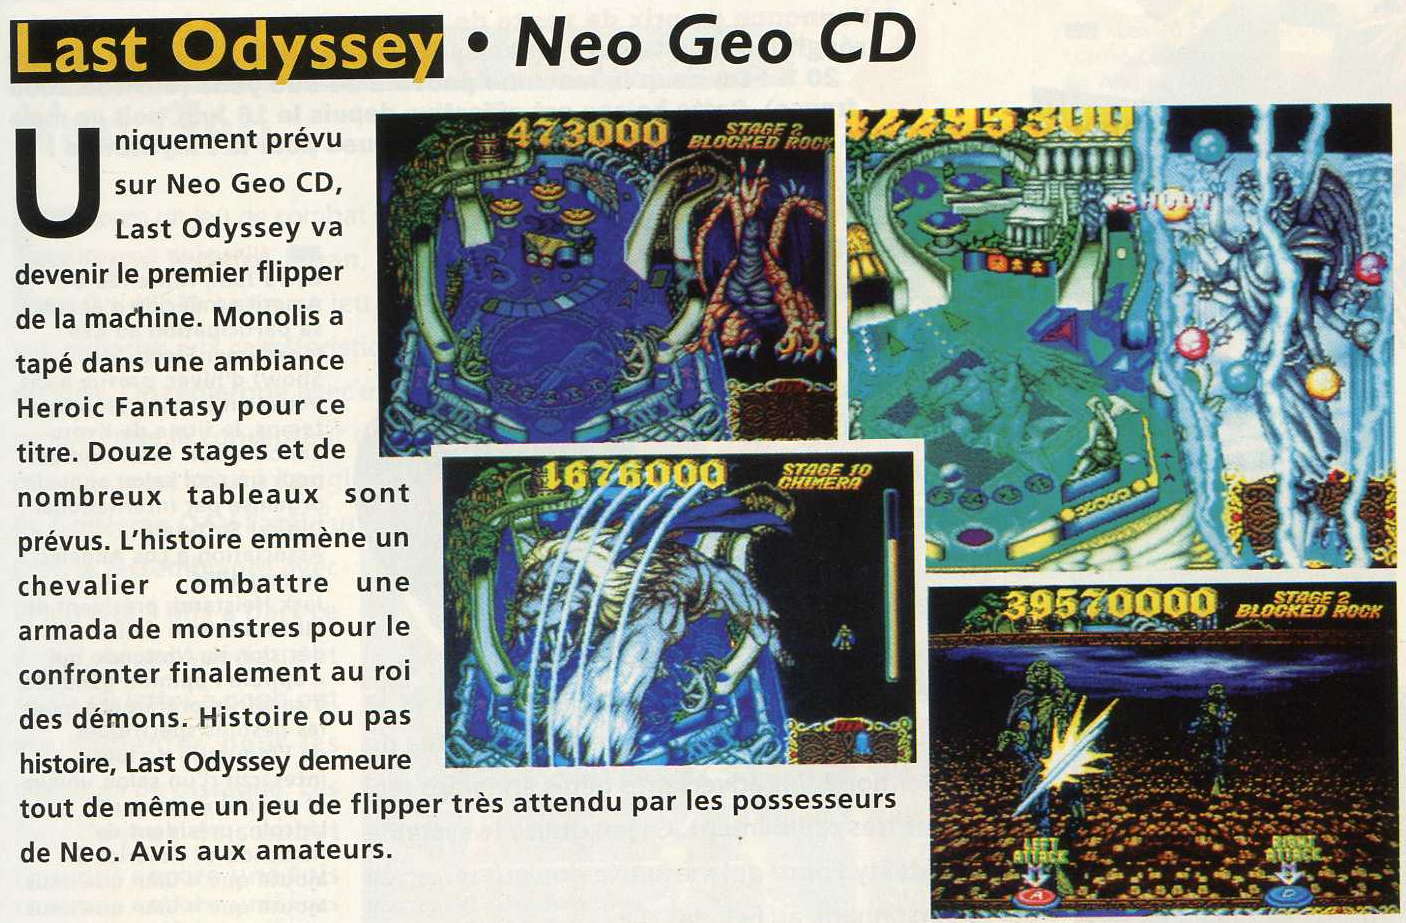 http://postback.geedorah.com/extra/misc/last_odyssey_cd_consoles_9.png